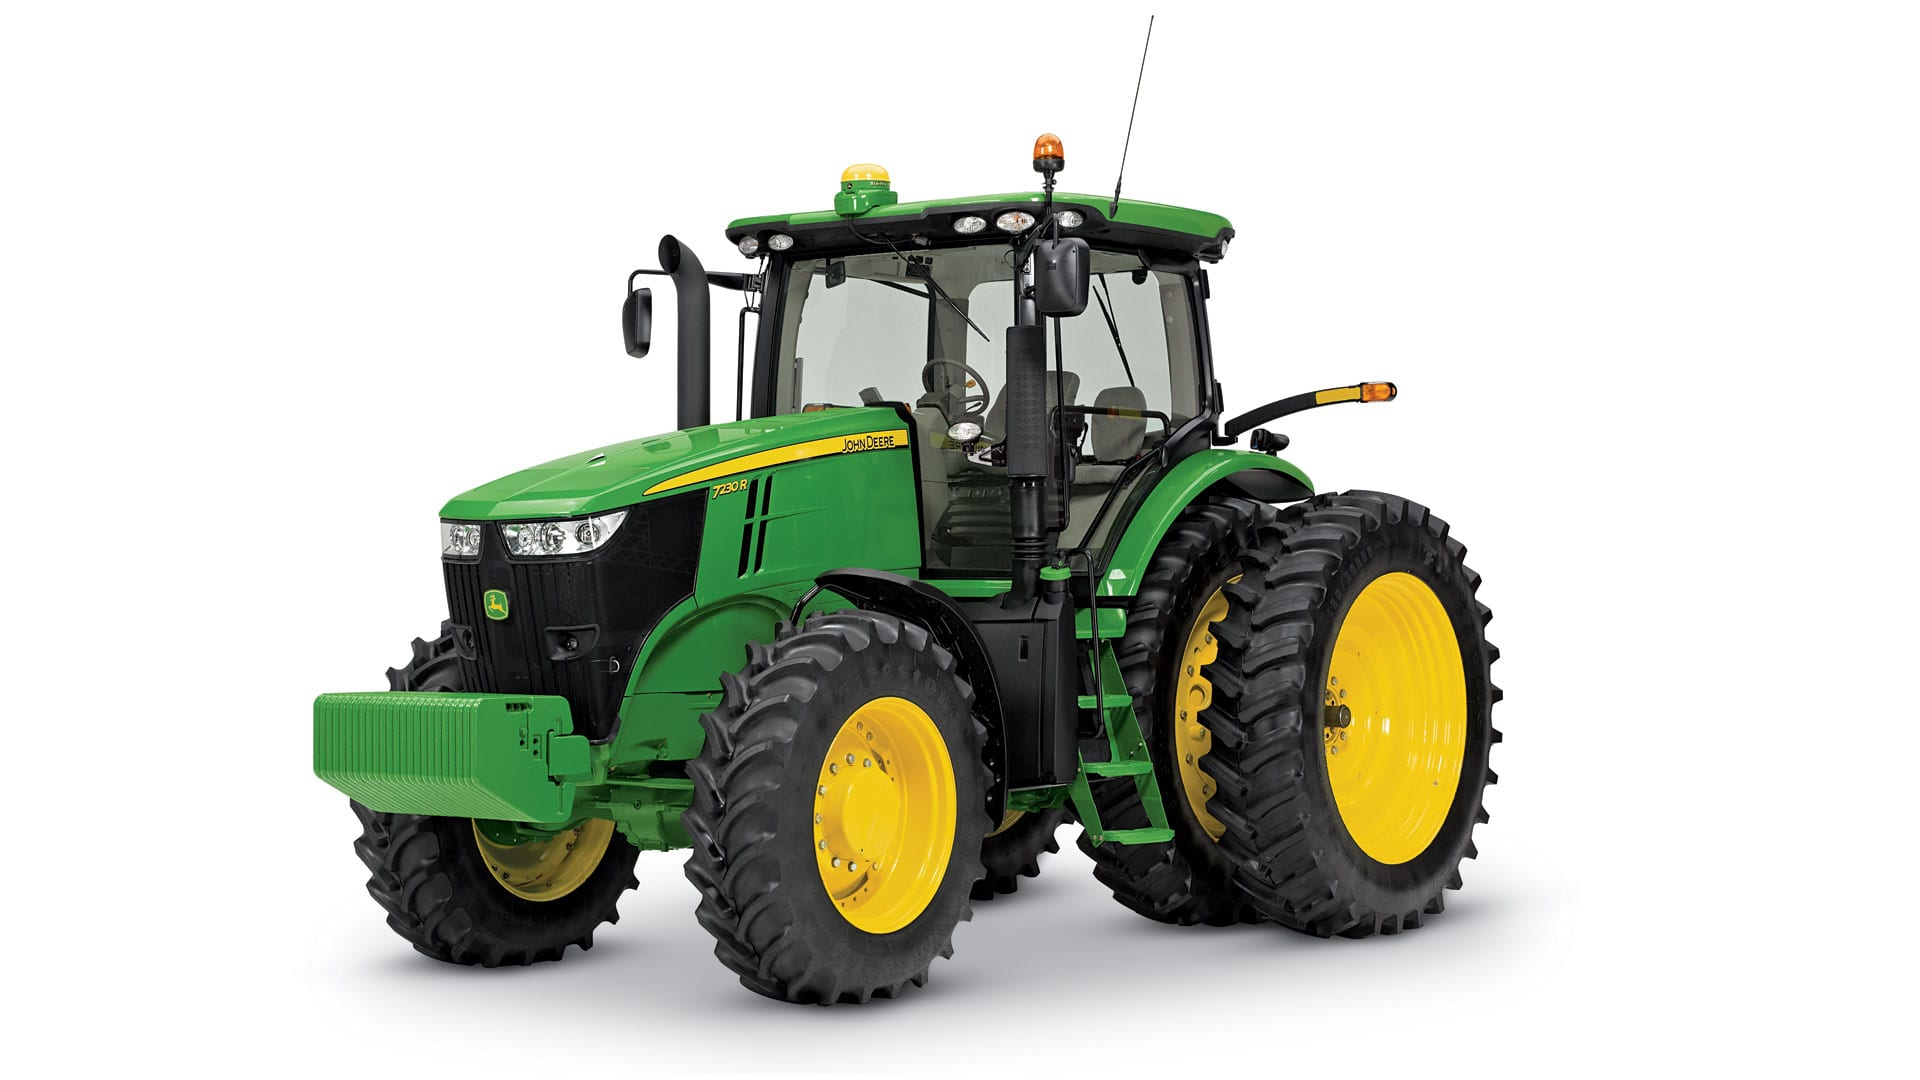 Compare Tractor Prices In 2019 Cost Guide Priceitherecom